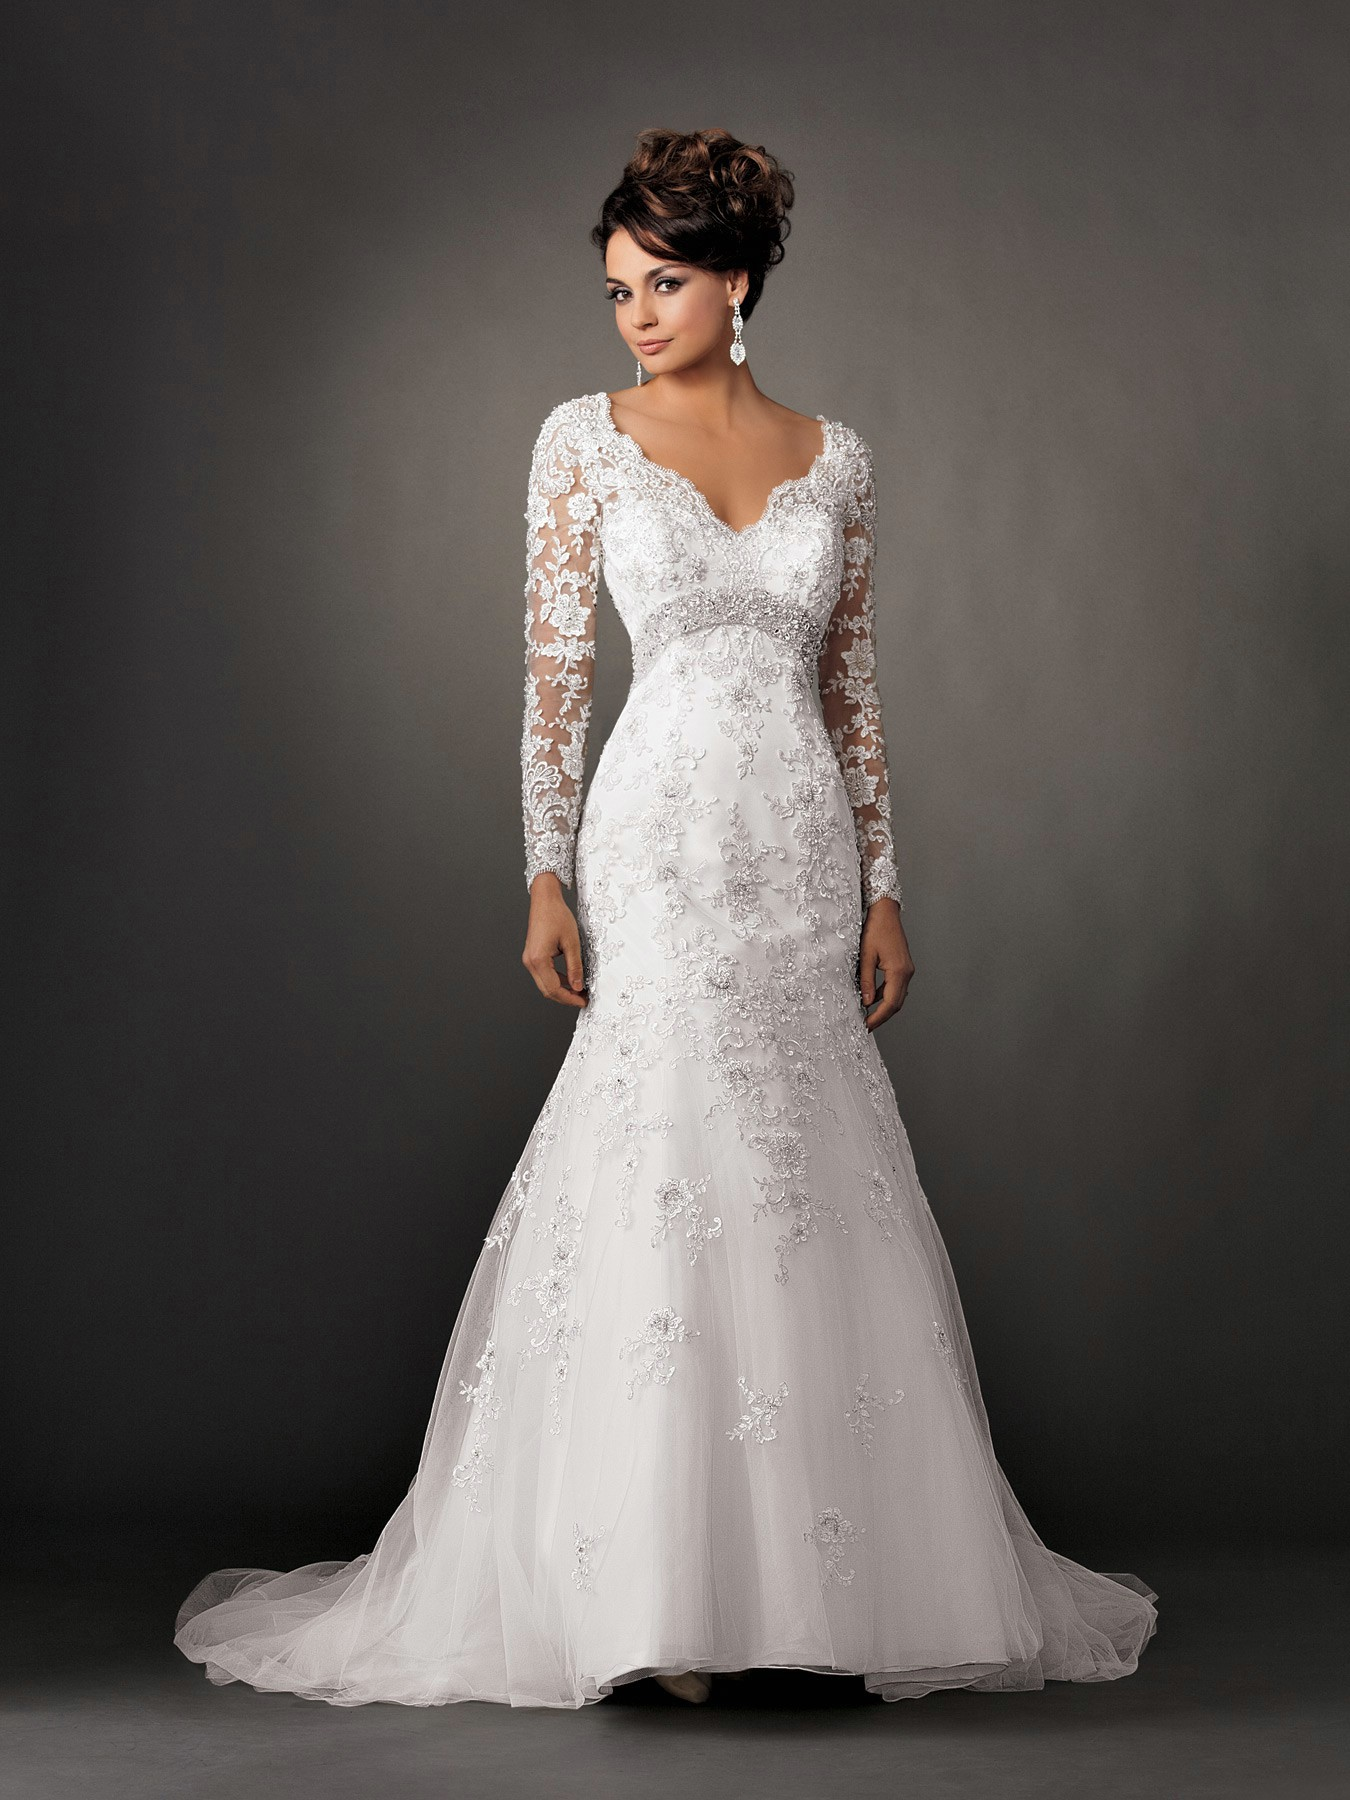 The Elegance Of Fall Lace Wedding Dresses With Sleeves